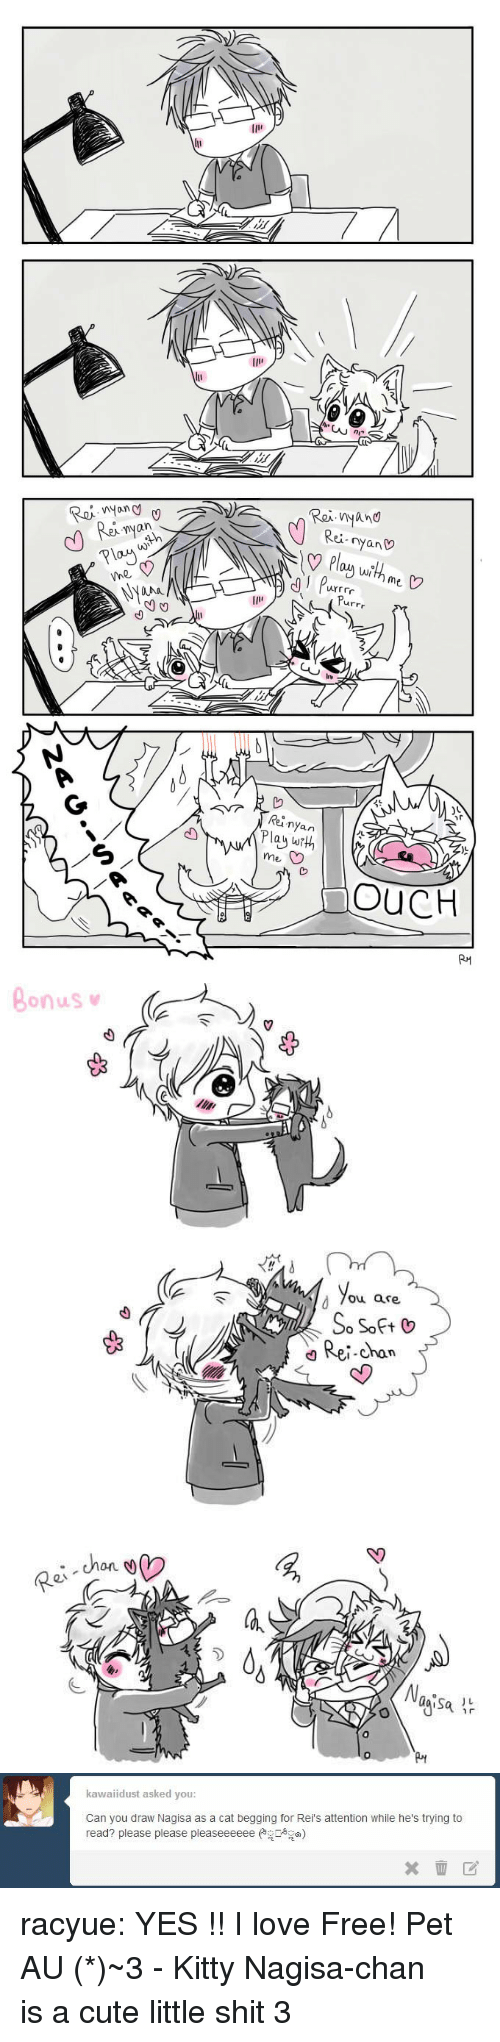 Cute, Love, and Shit: wyan  Rex nyan  PlaX  Rei nyano  Rei-nyan  LN  With me  urrr  nr  nyan  au w?  me  OUCH   Bonus  d 7ou are  Rei-chan  0v  ひ   kawaiidust asked you  Can you draw Nagisa as a cat begging for Rei's attention while he's trying to  read? please please pleaseeeeee)  ×壶团。 racyue:  YES !! I love Free! Pet AU (*≧ω≦)~3 - Kitty Nagisa-chan is a cute little shit 3